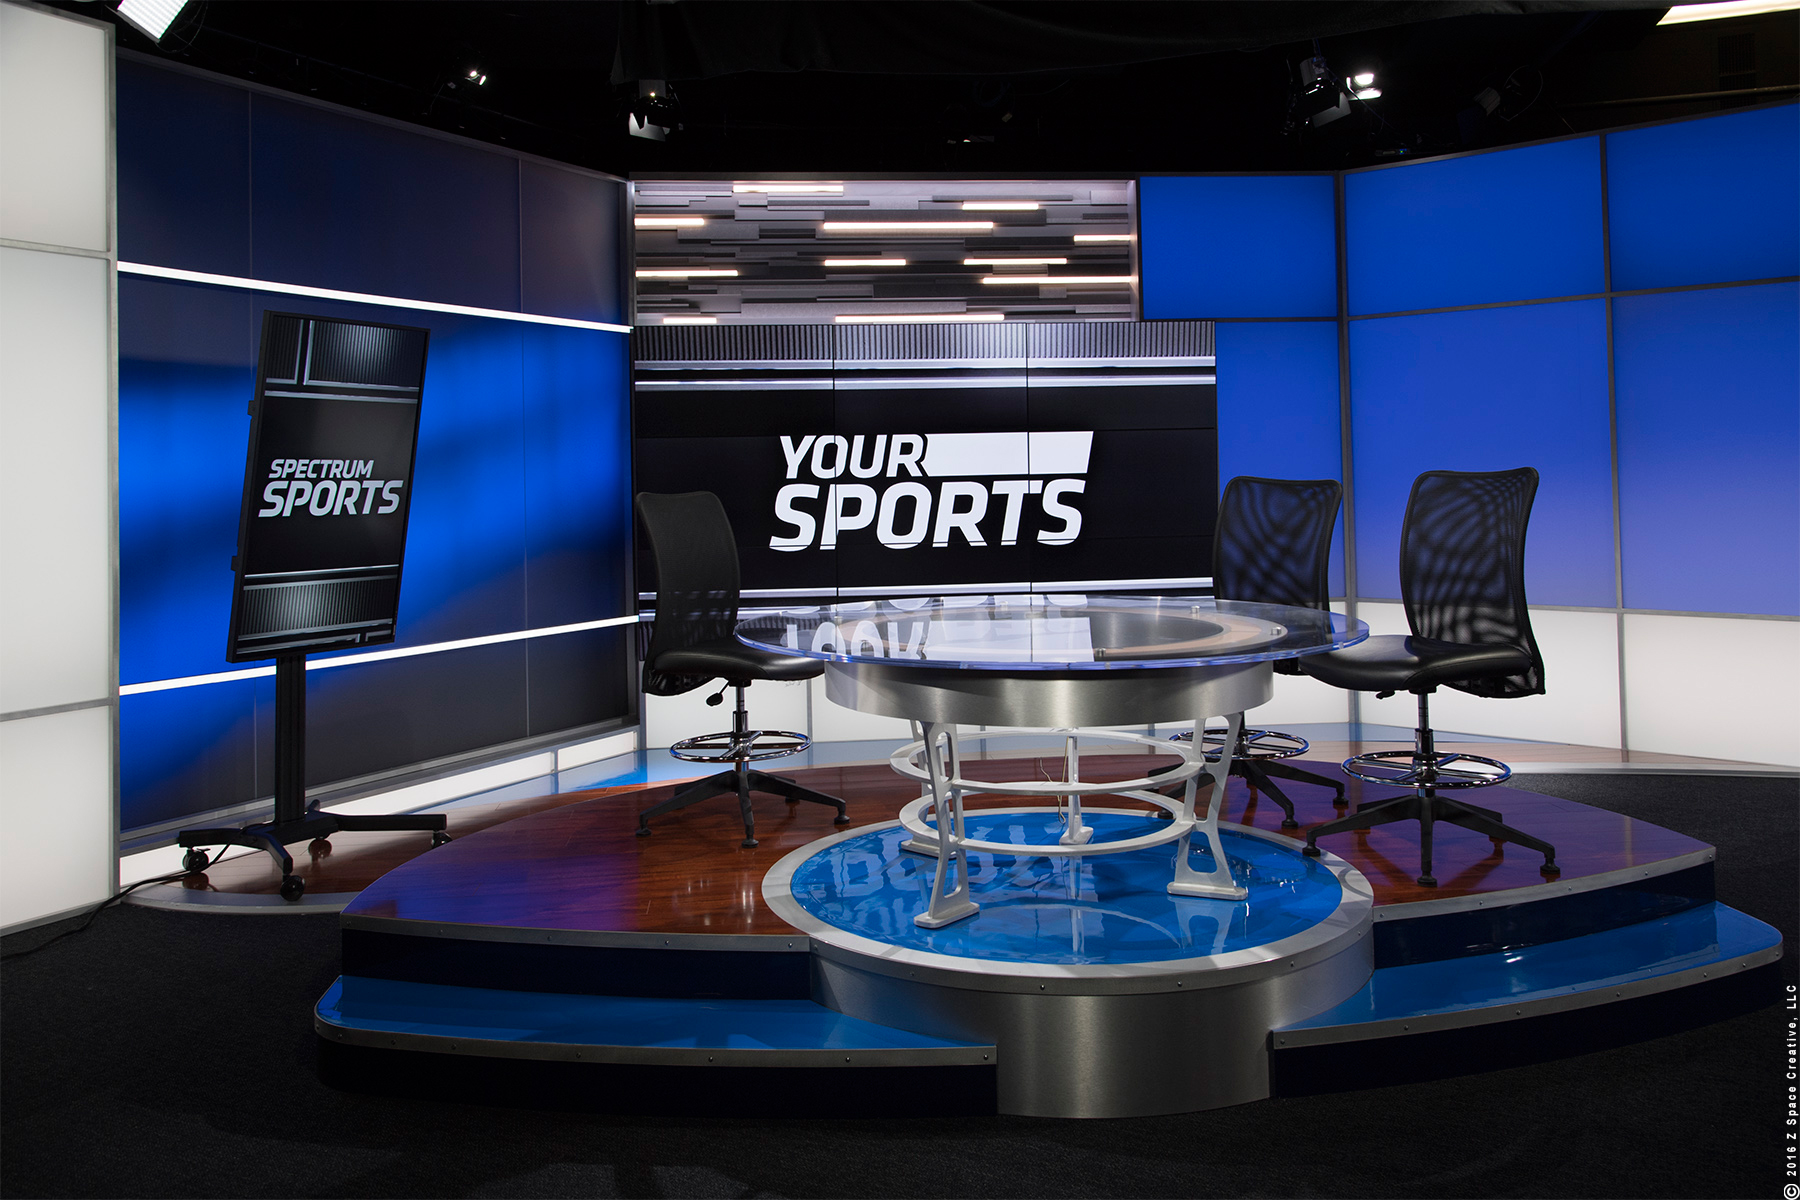 ncs_spectrum-sports-tampa-studio_0003